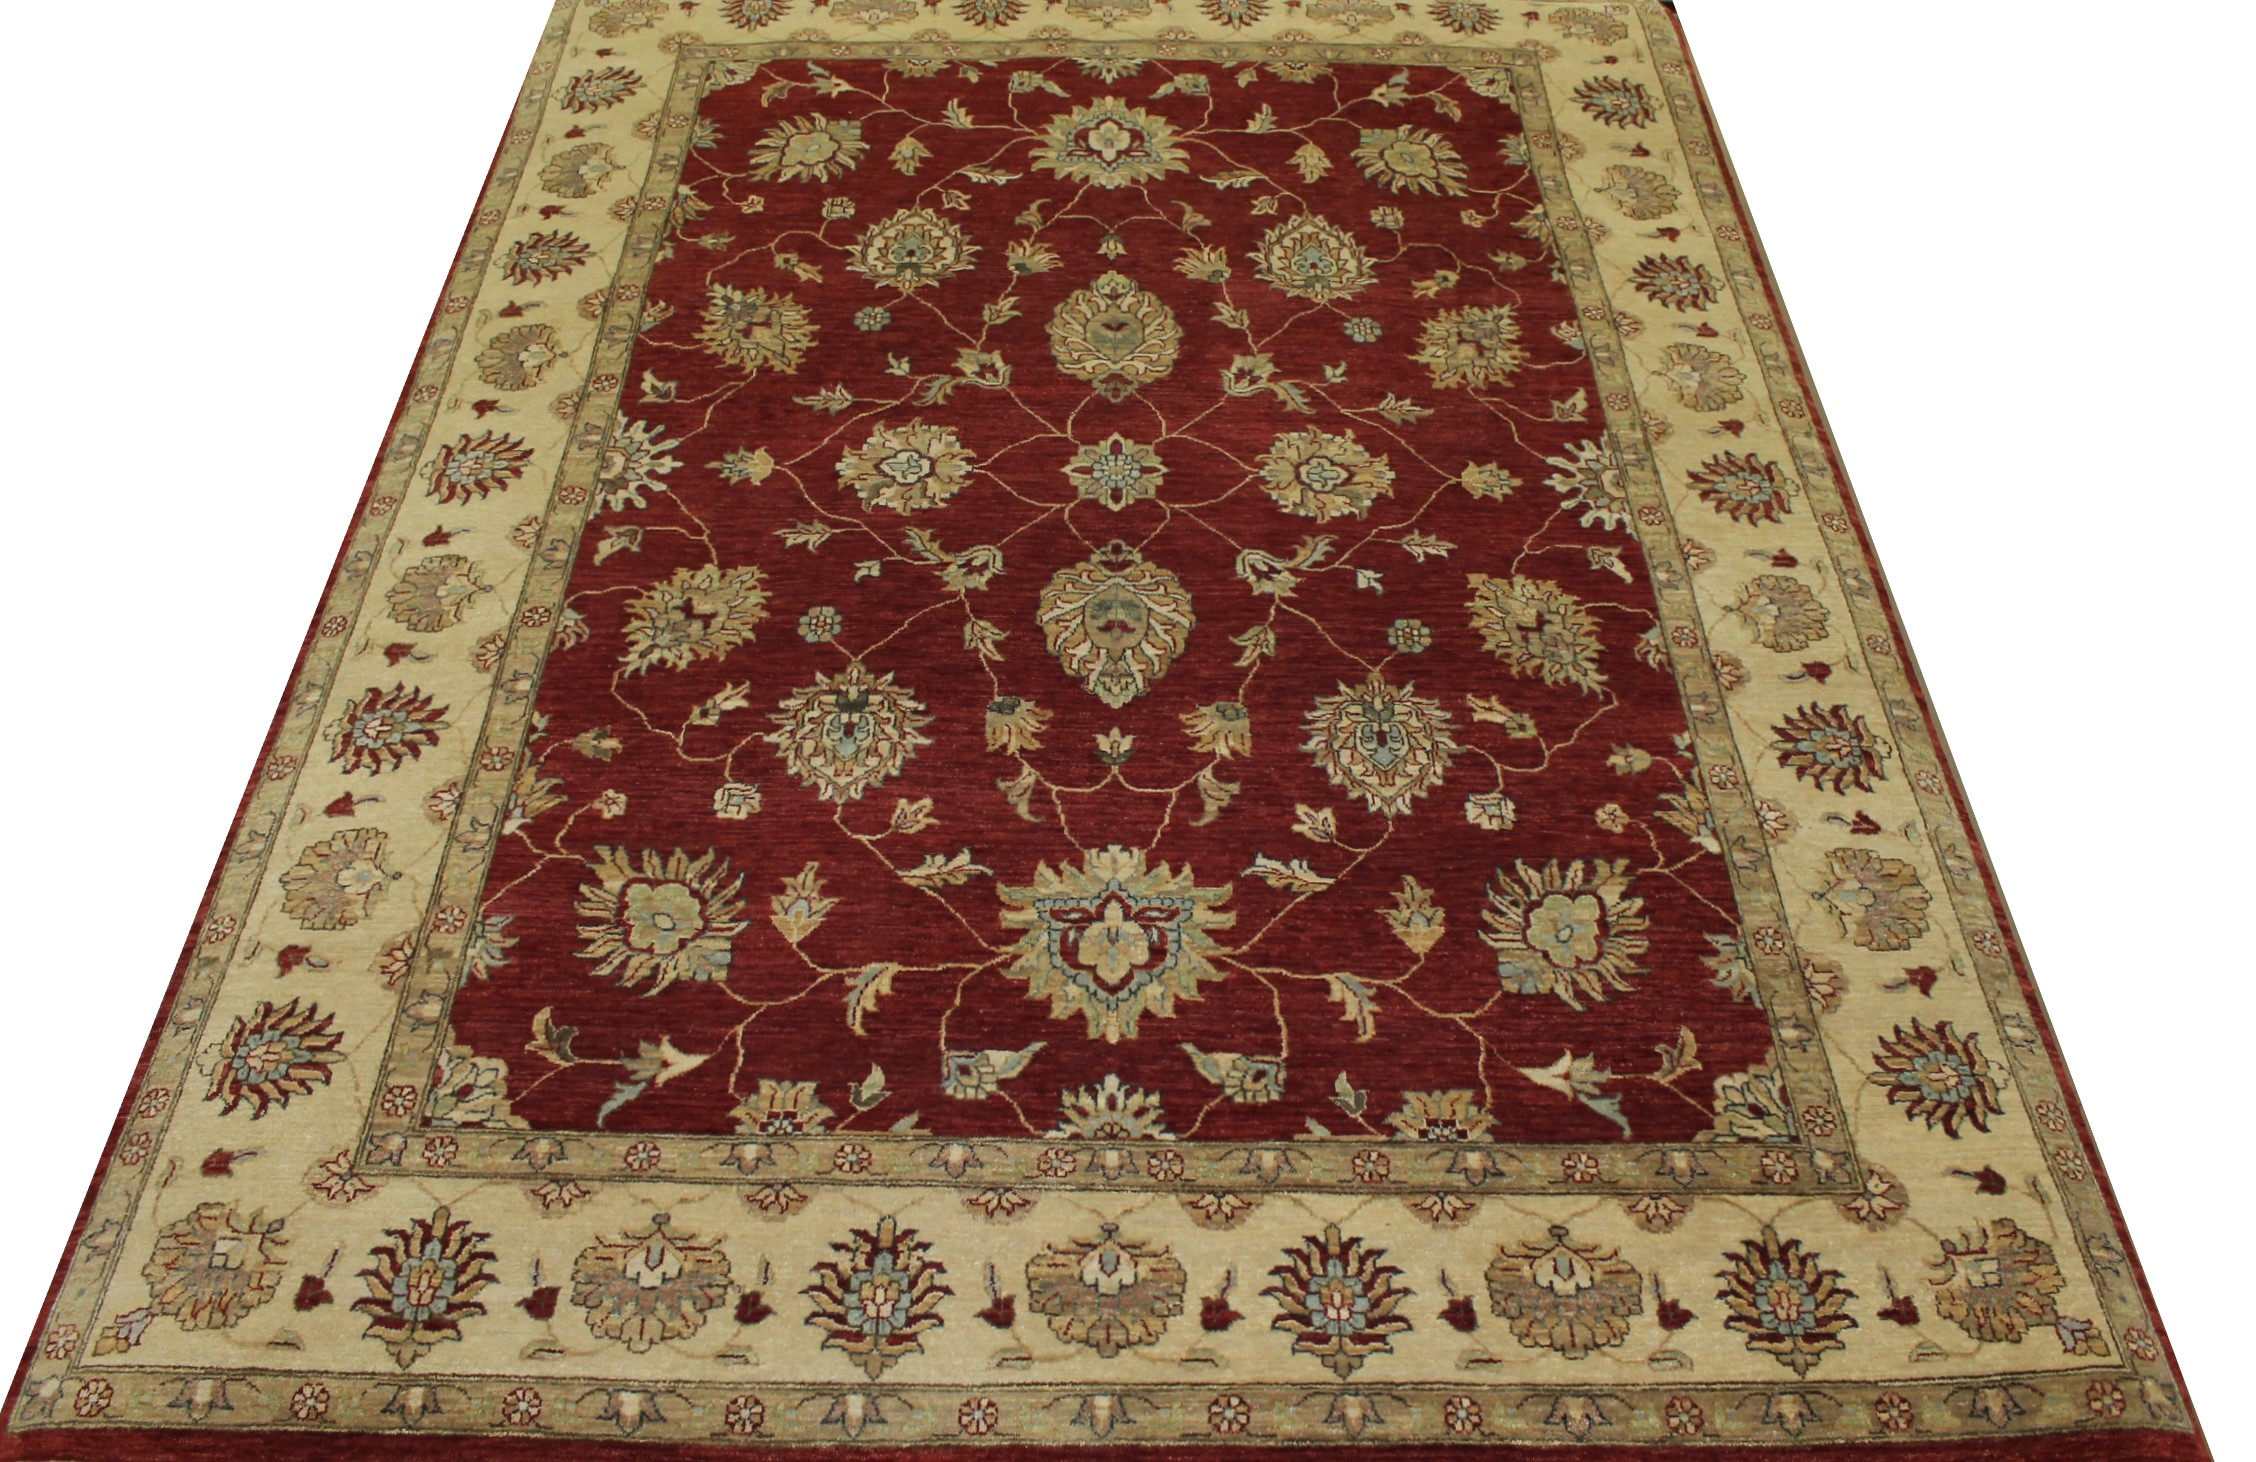 8x10 Traditional Hand Knotted Wool Area Rug - MR13858